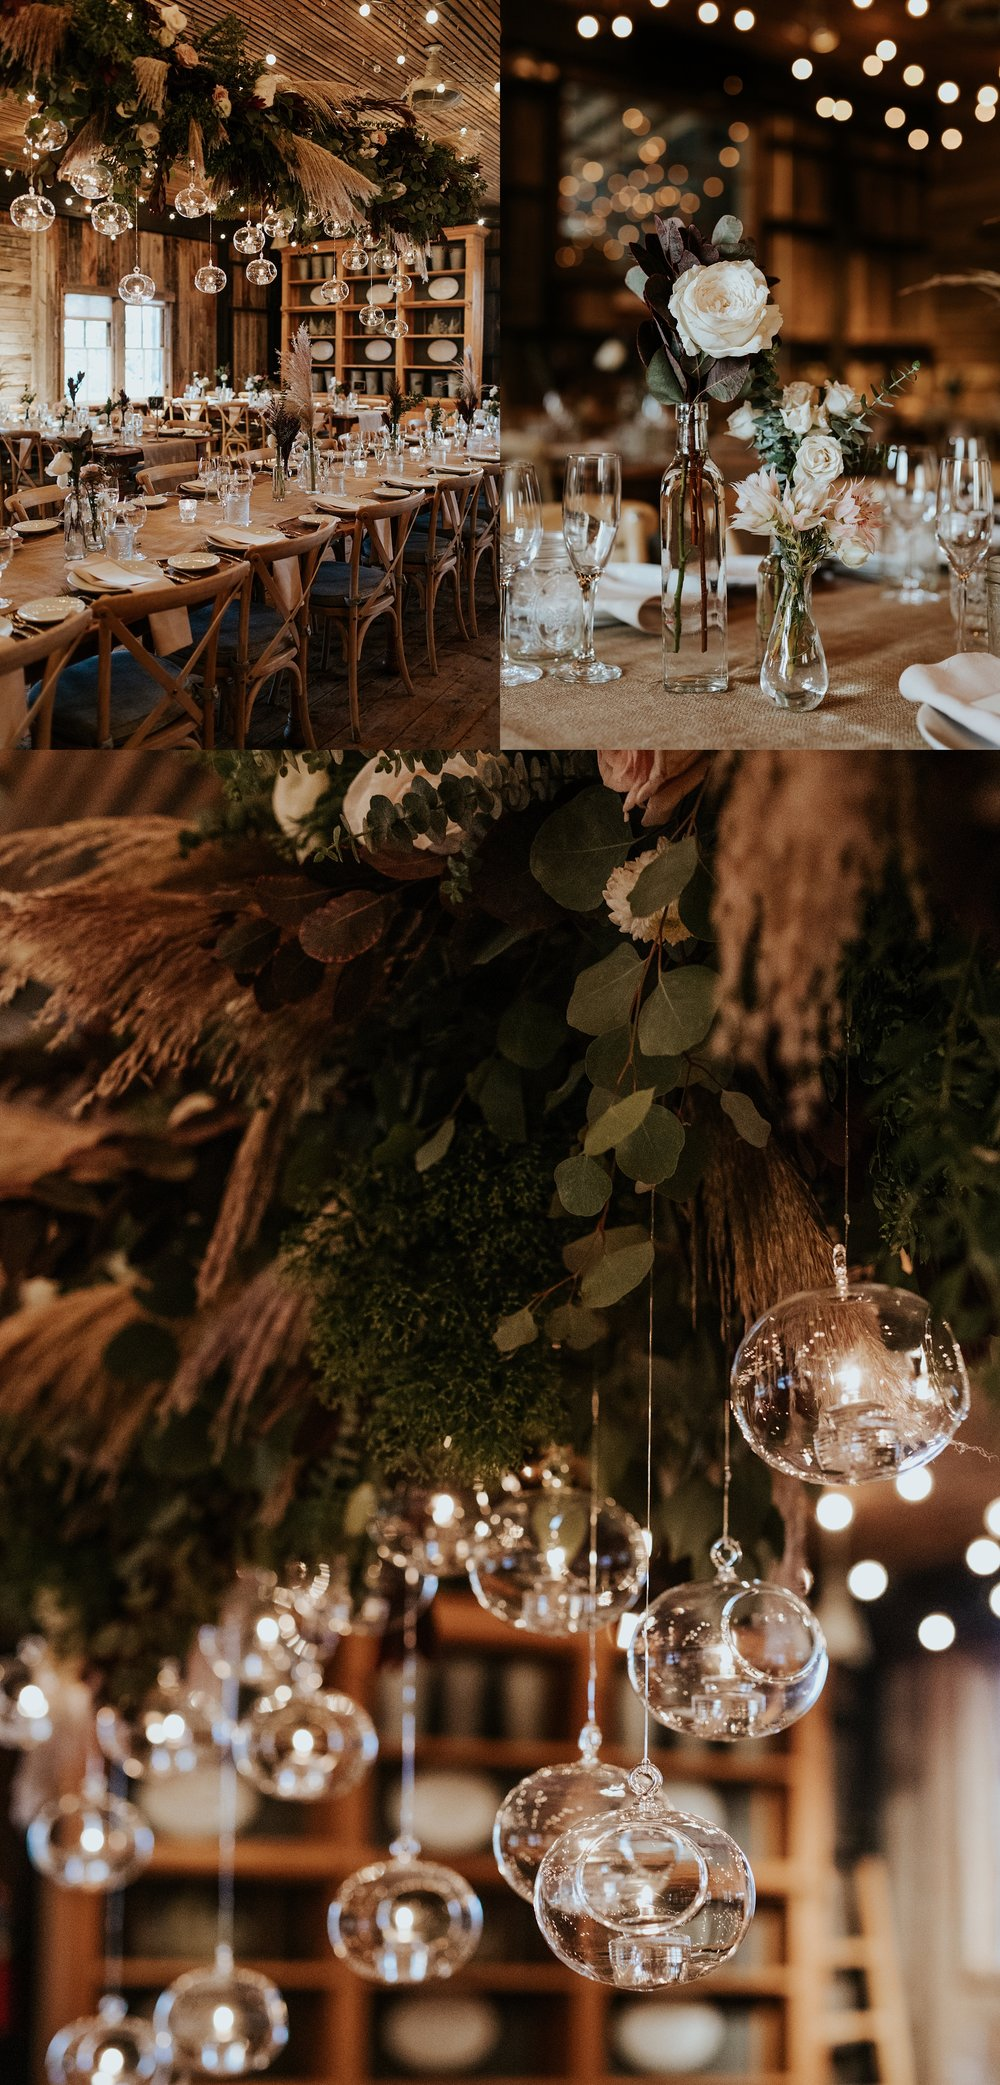 Heartfelt Botanical Terrain at Styers Wedding in Glenn Mills Pennslyvania by Trin Jensen Photography_0046.jpg